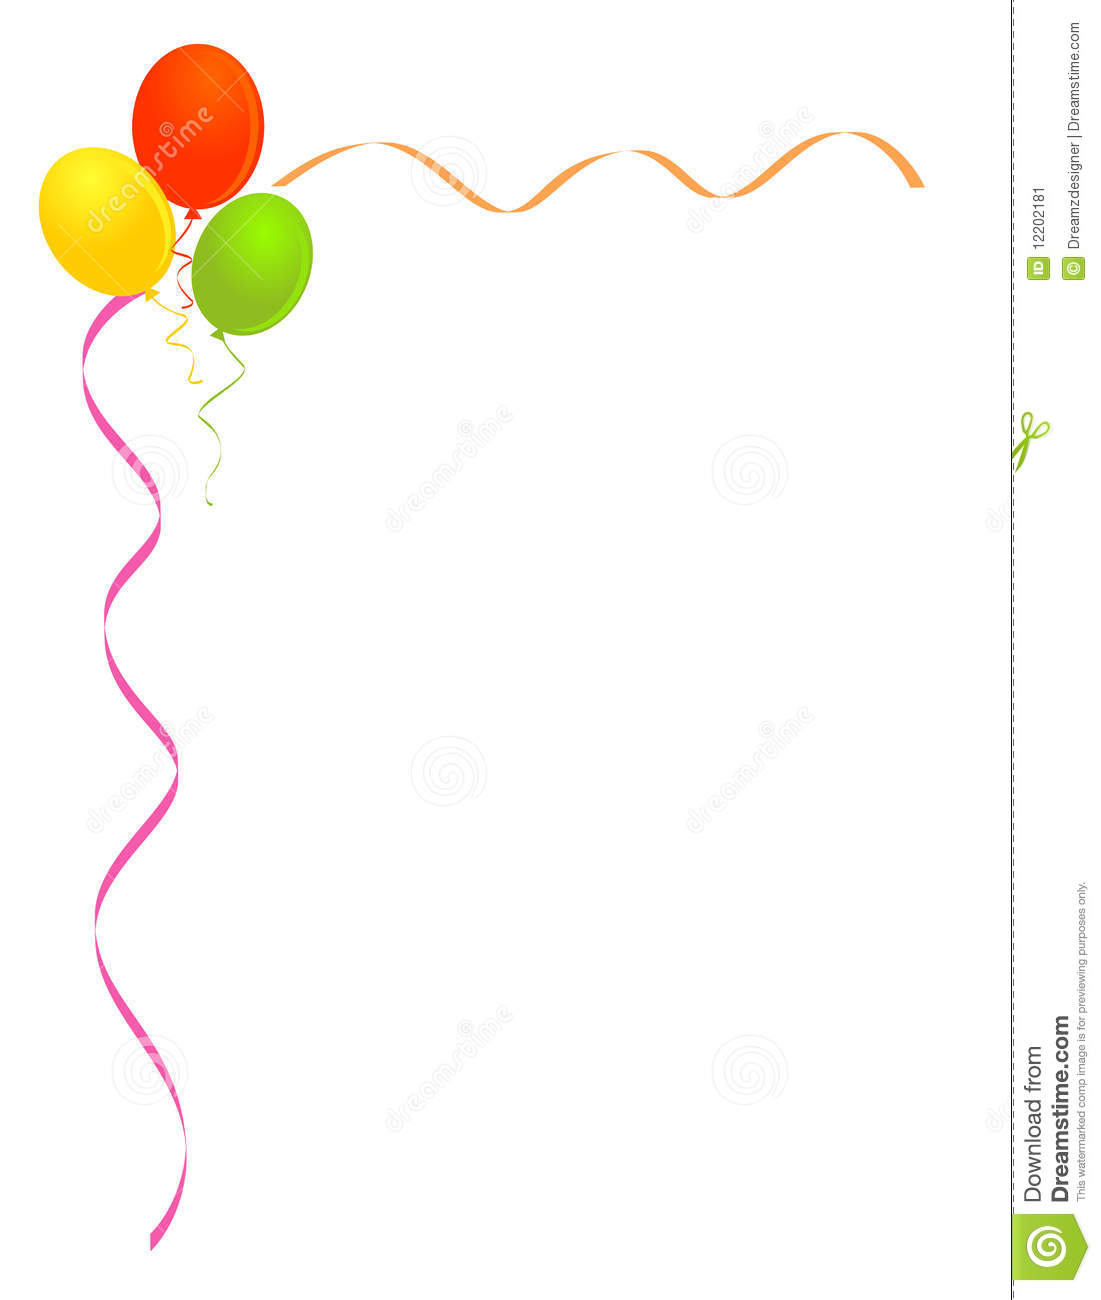 Party Balloons Frame Border Stock Image - Image: 12202181